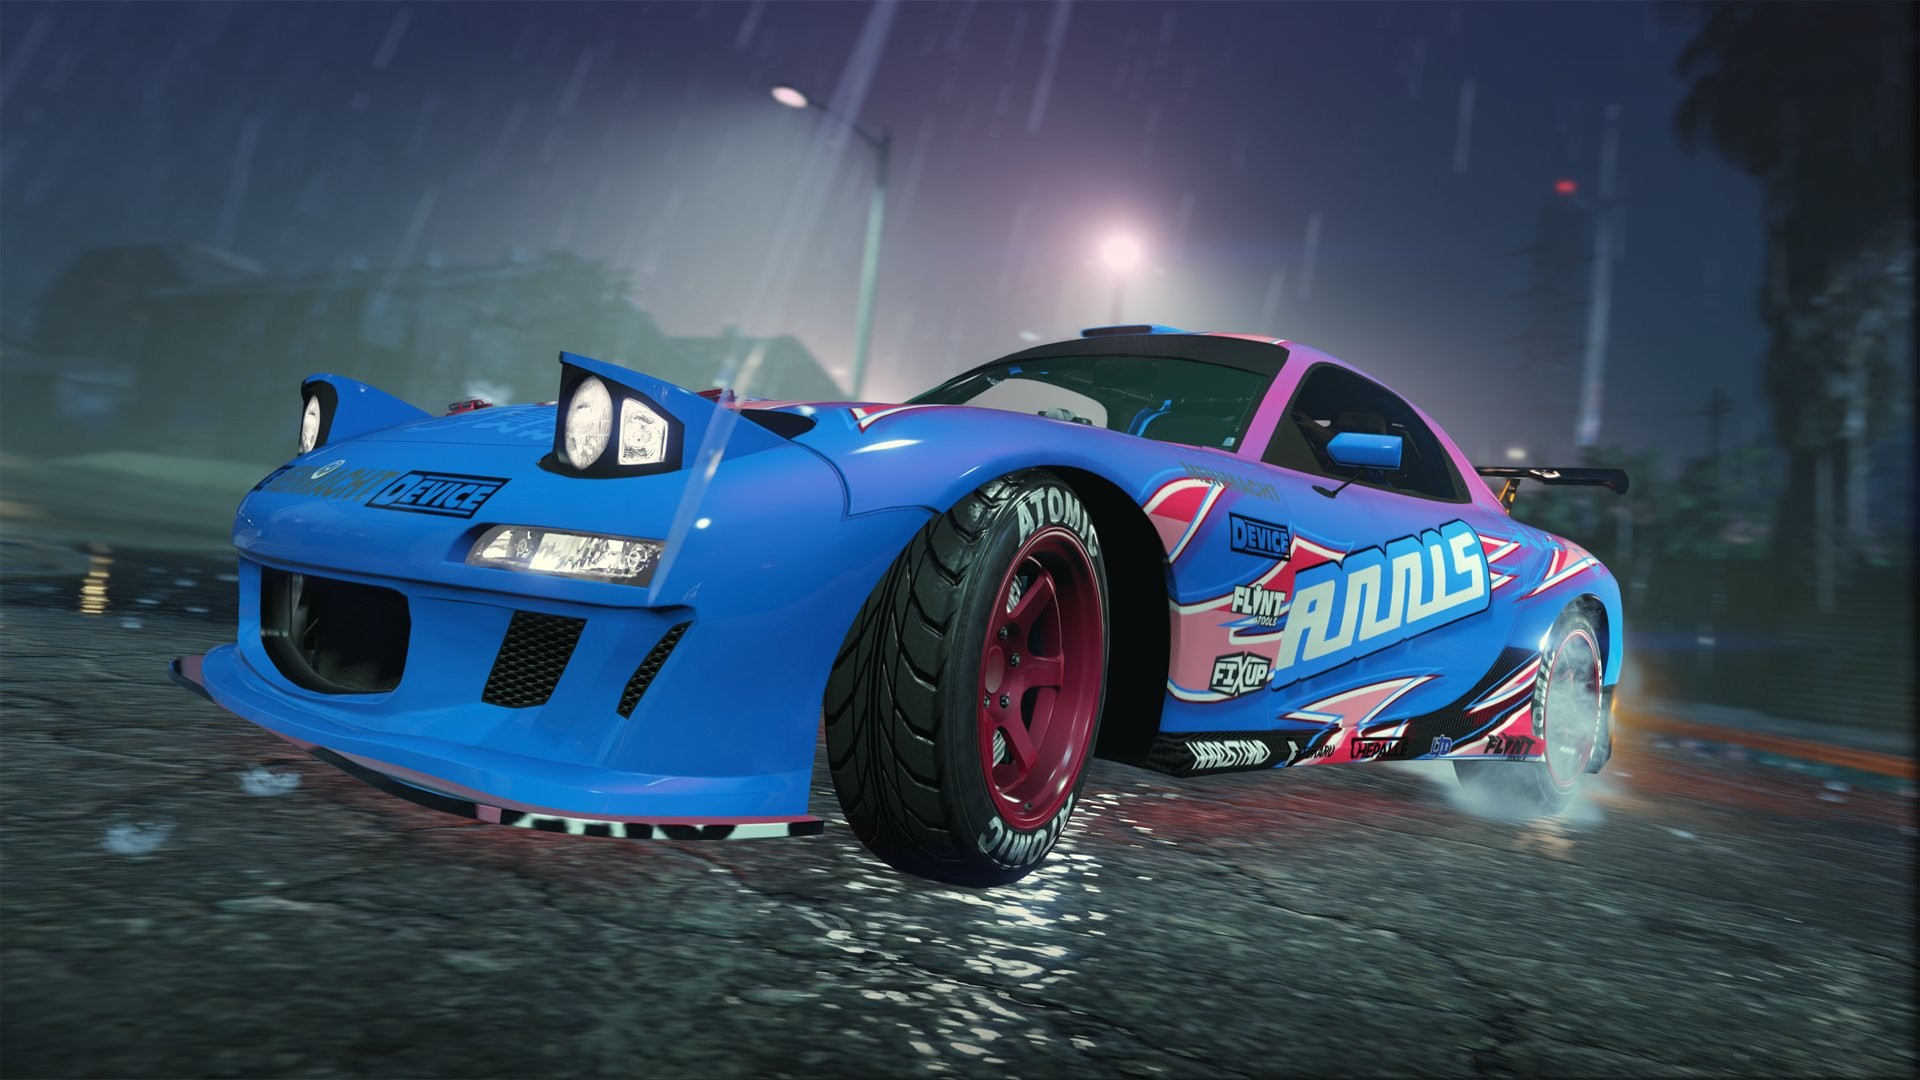 Annis ZR350 car drifting in the wet.